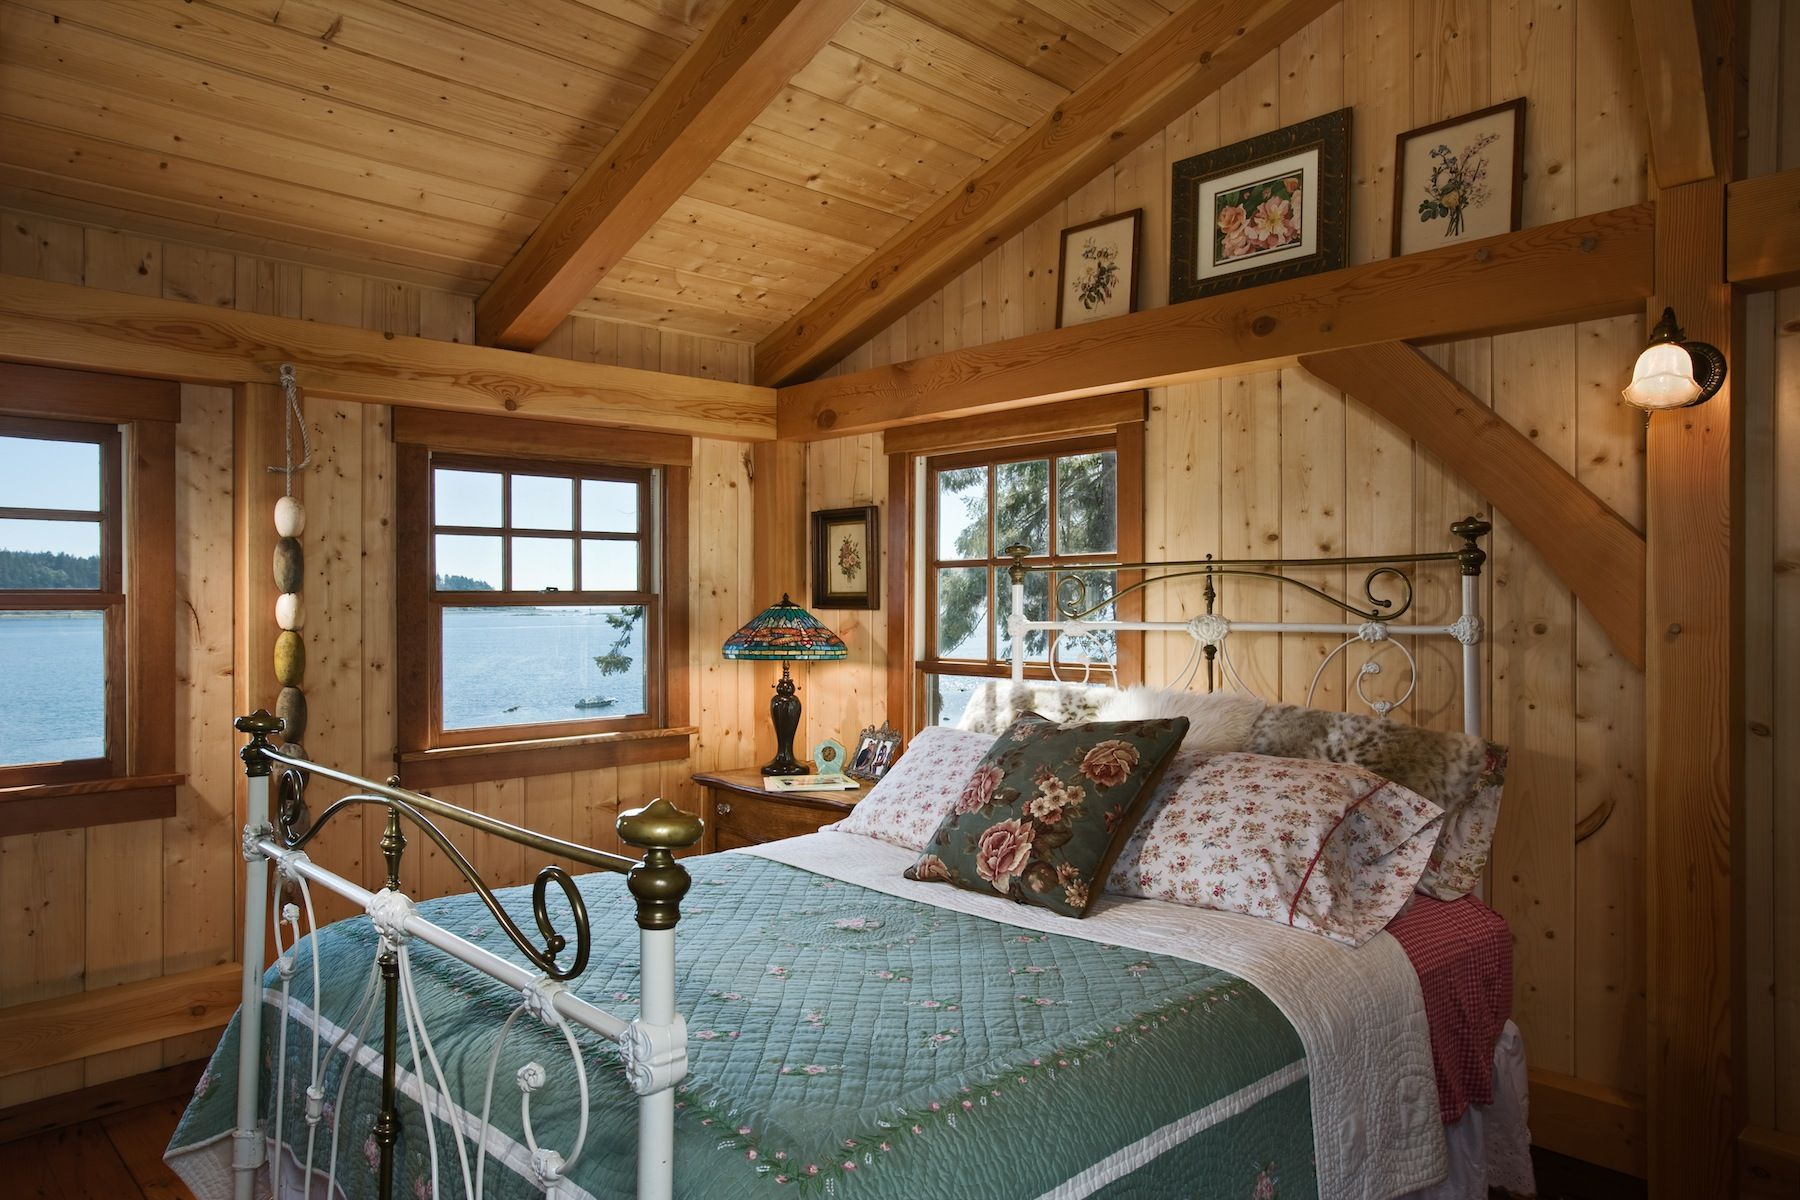 mills featured delany camera sm cabins magazine life bizios cabin mg in architect